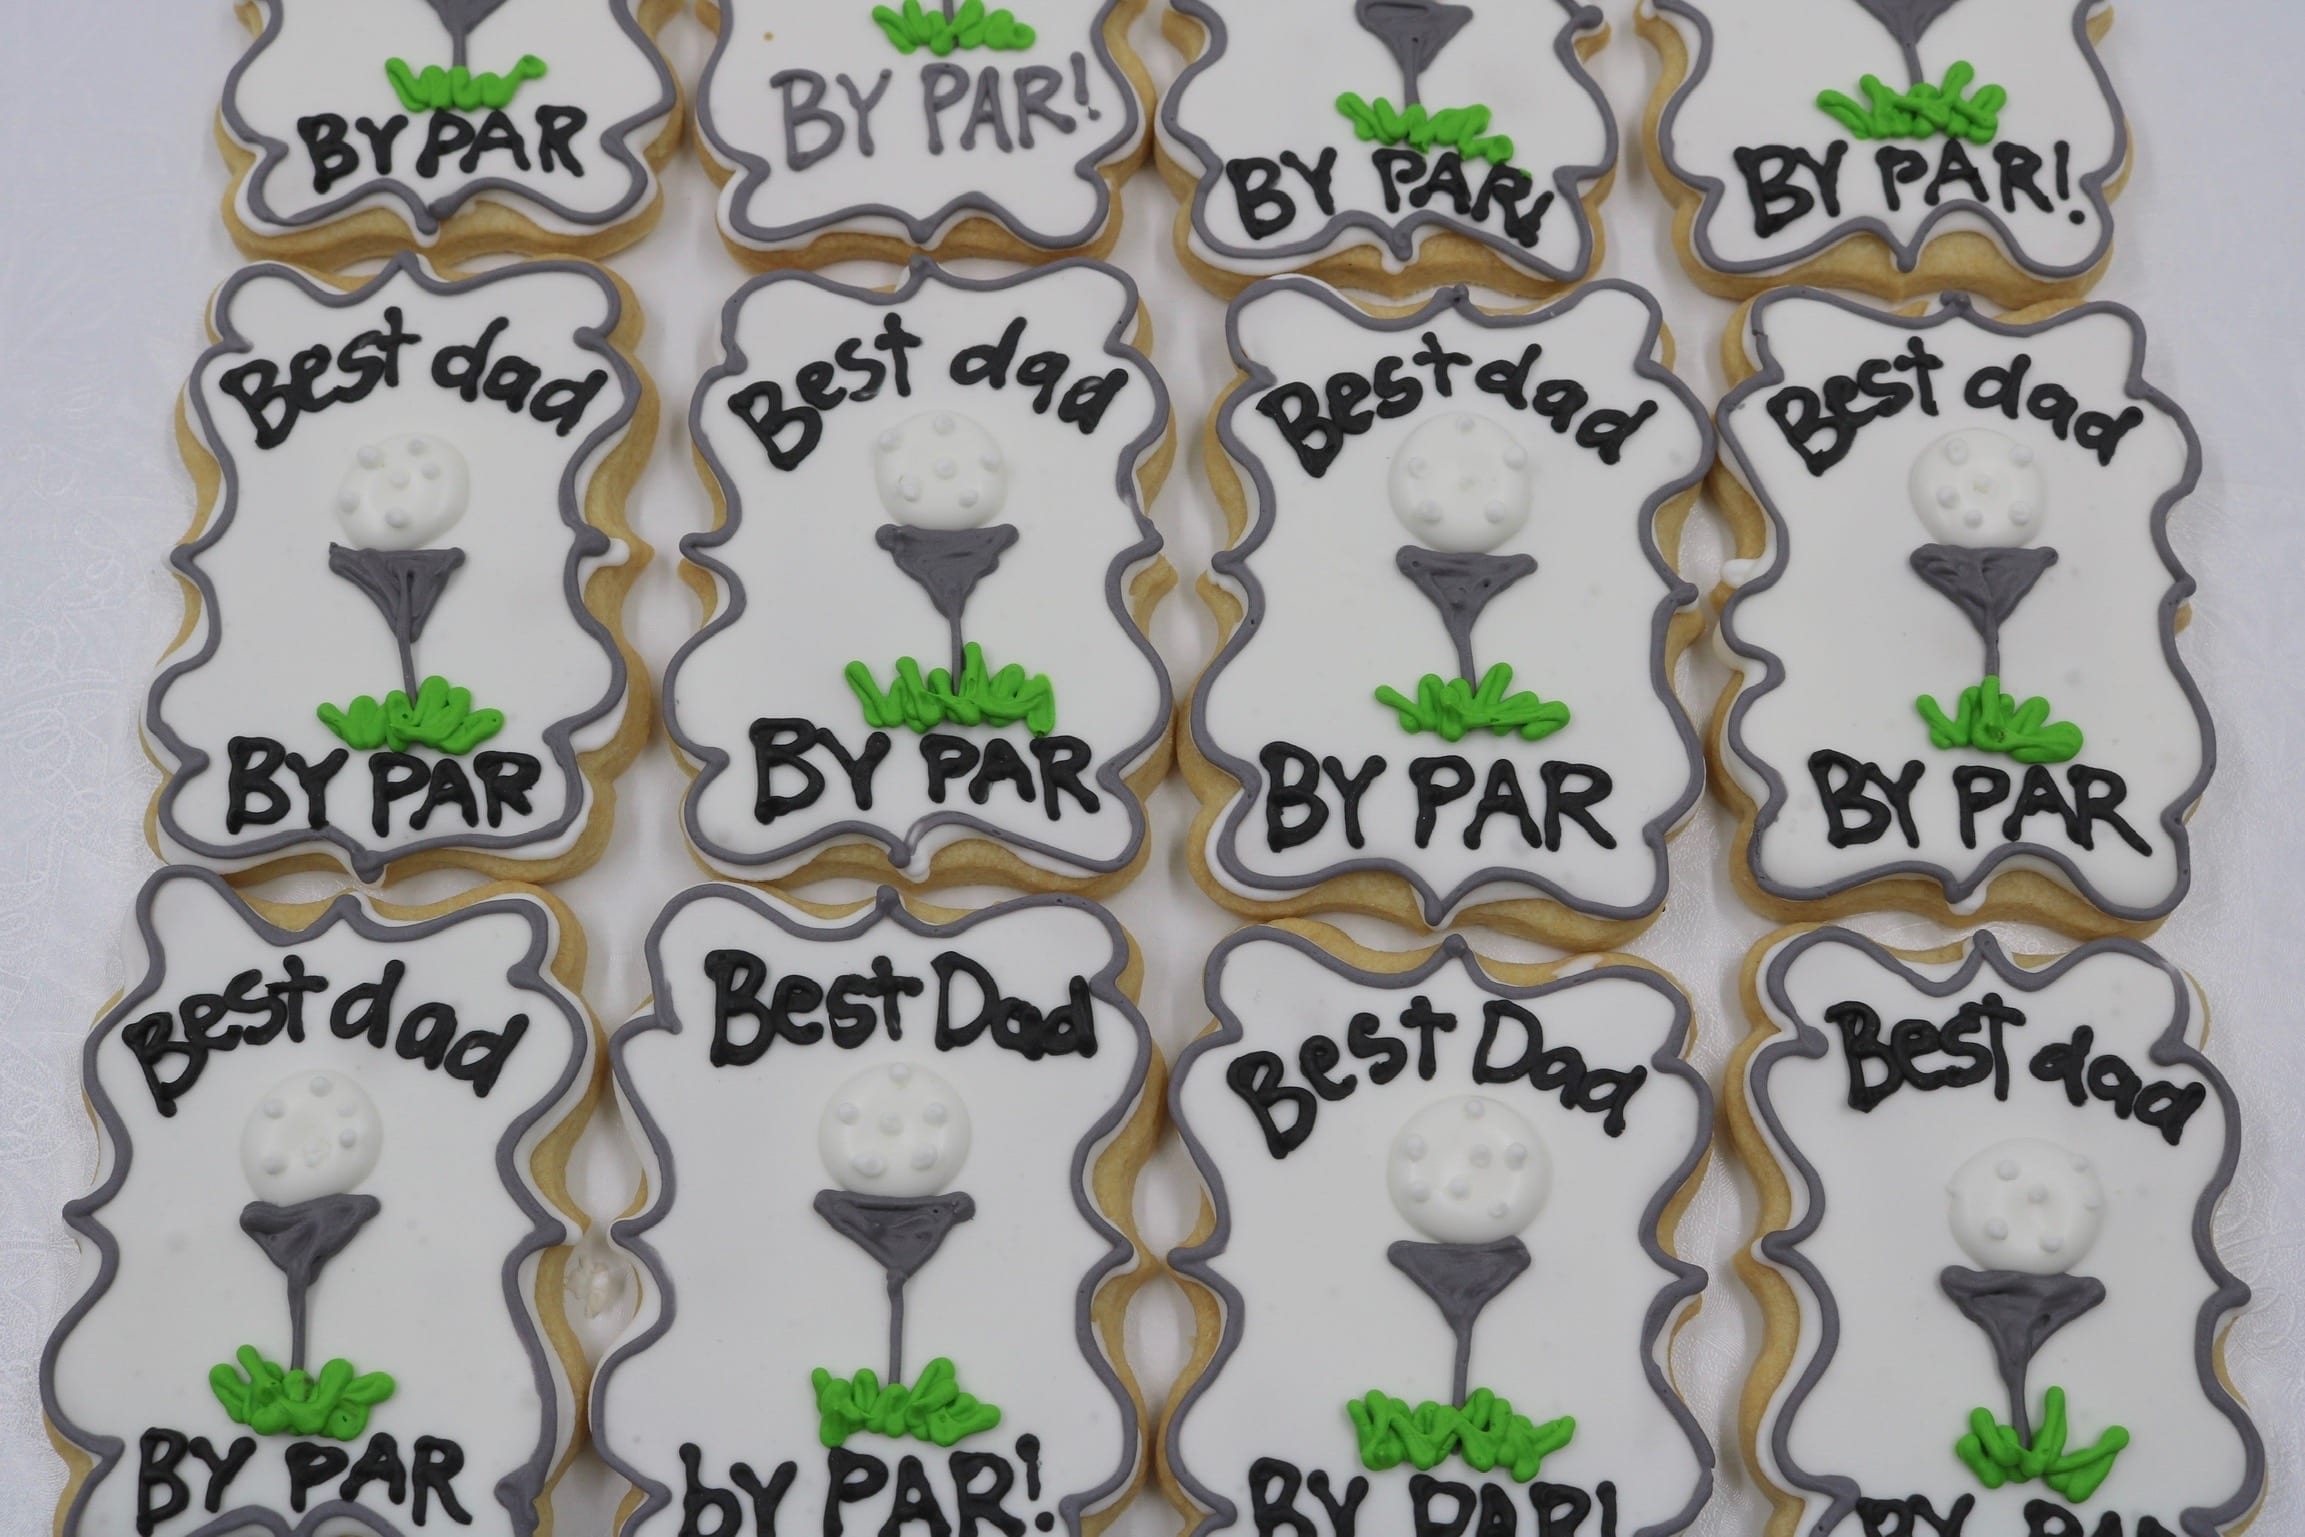 Best Dad by Par Fathers Day Cookies | 3 Sweet Girls Cakery